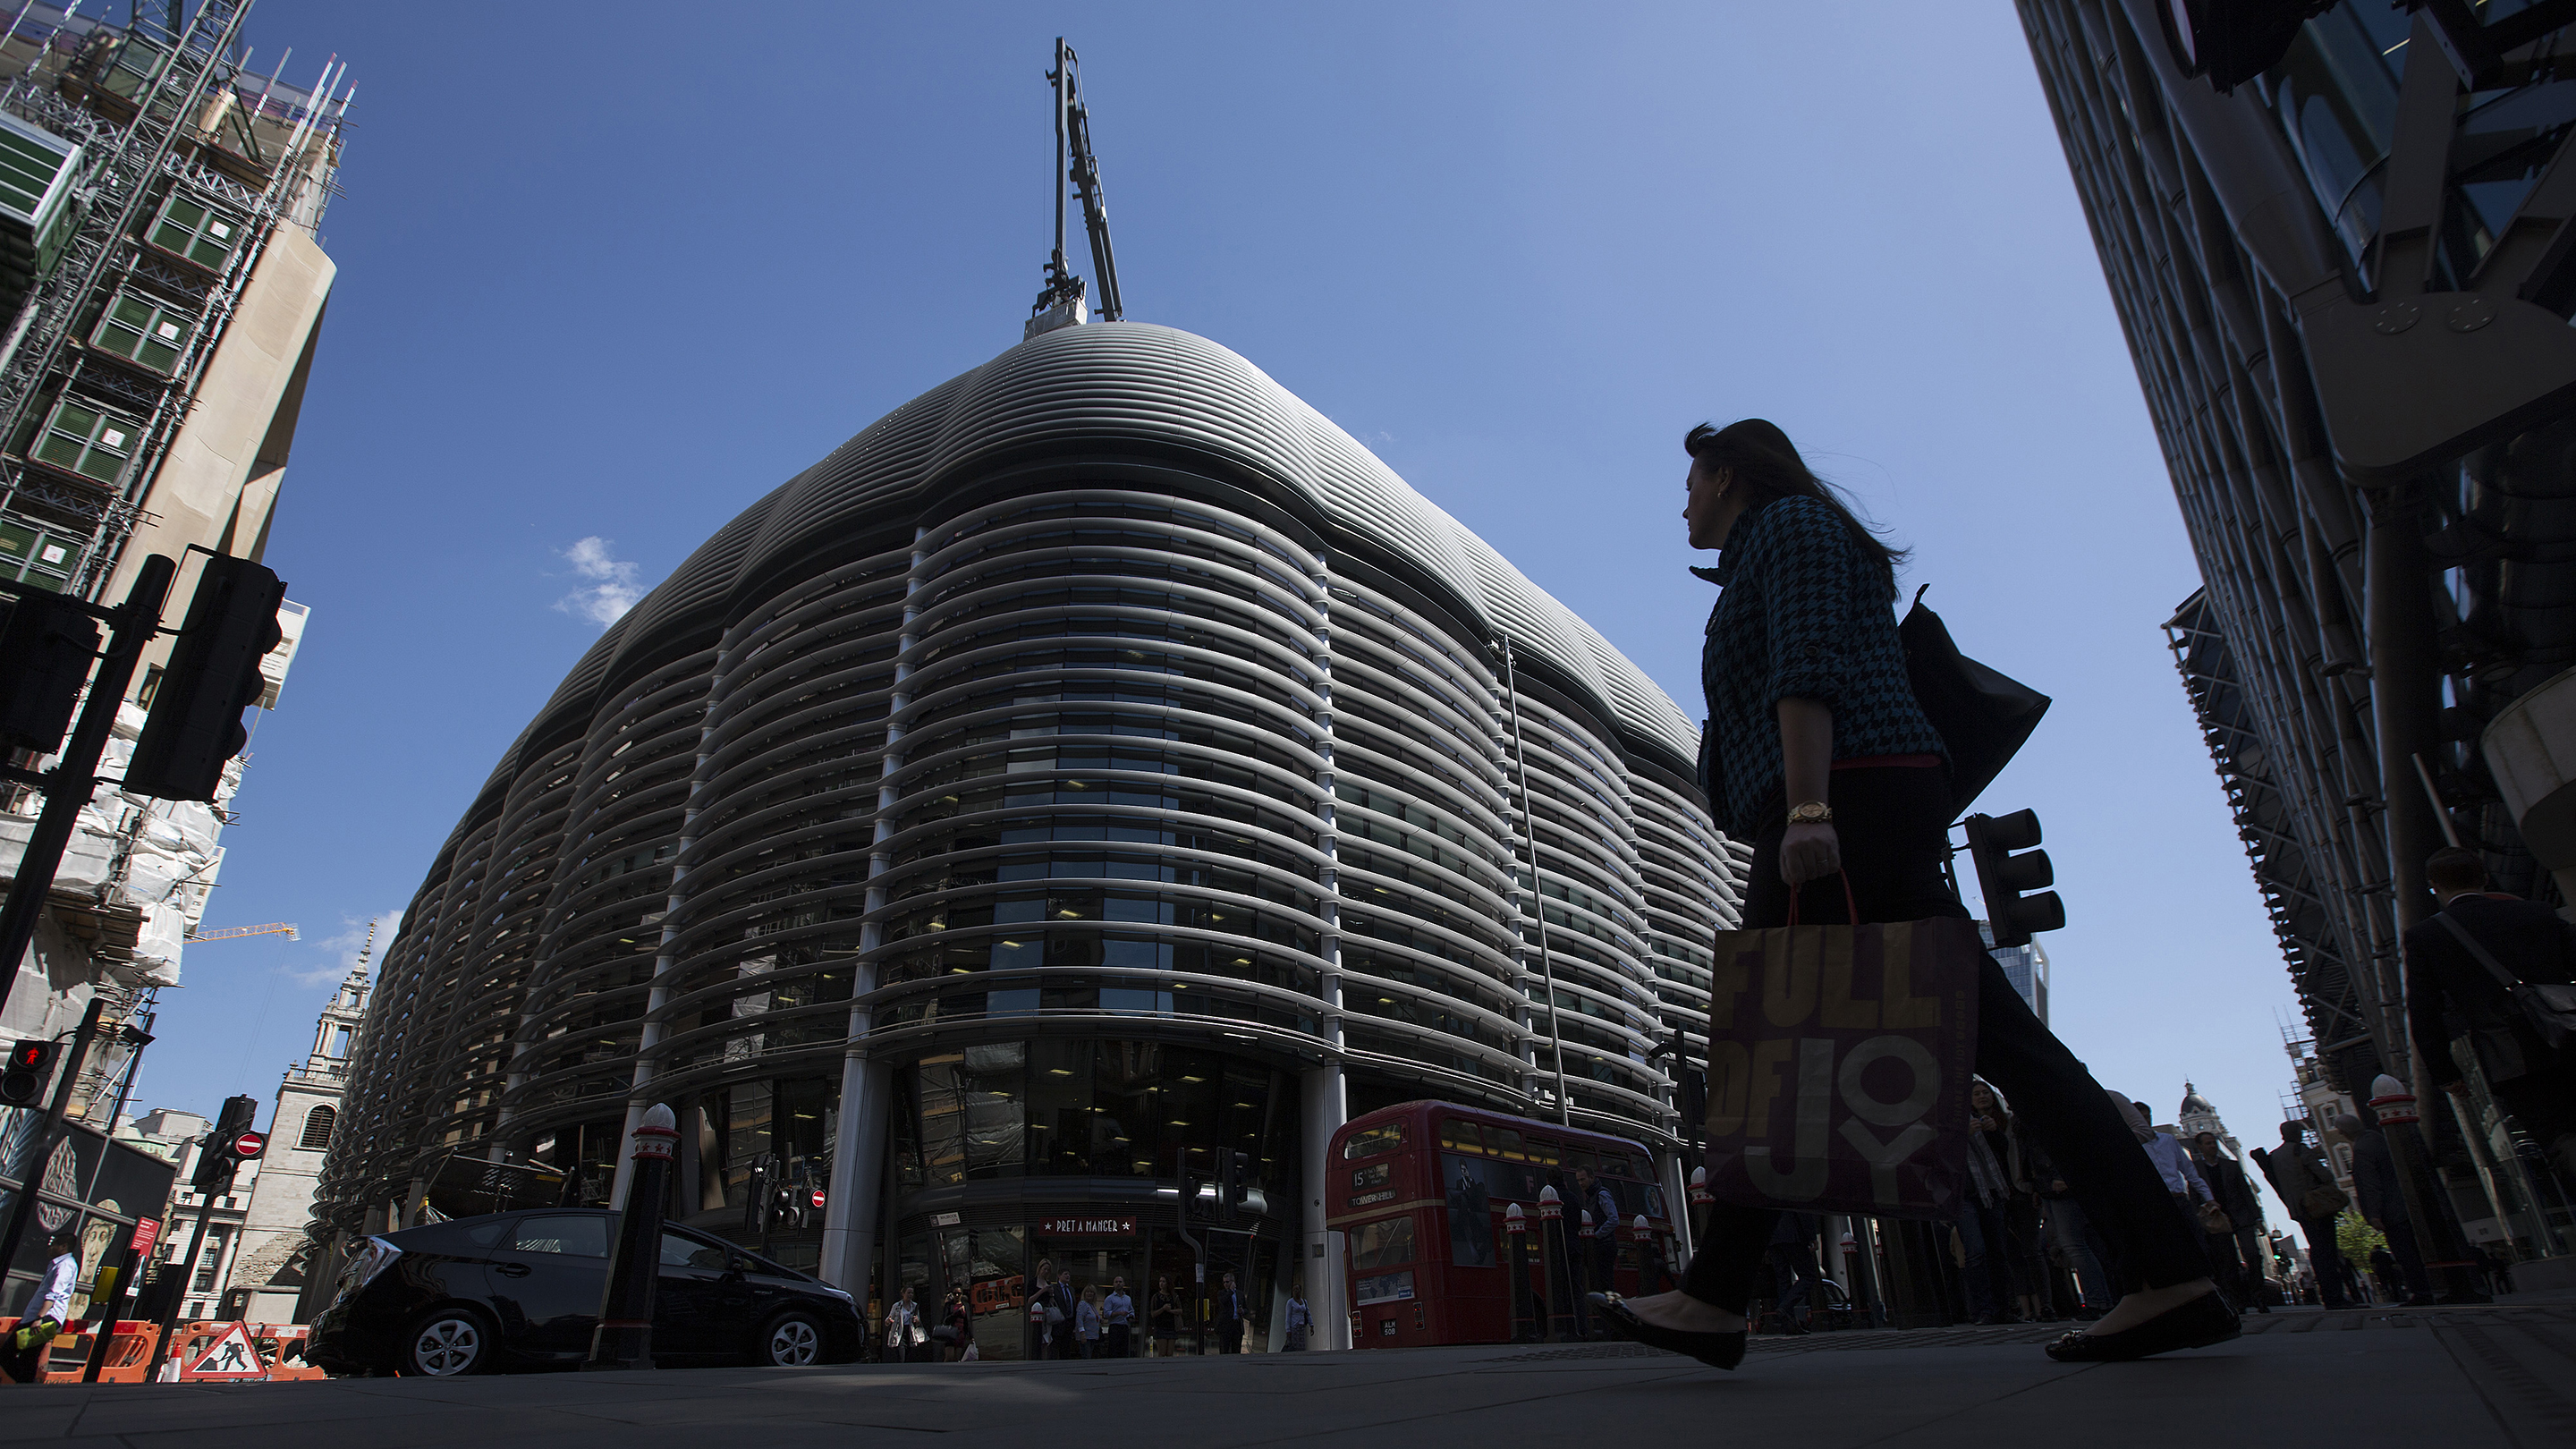 Cathay Life Insurance Co. Buys Walbrook Building In Biggest London Office Deal Of 2015